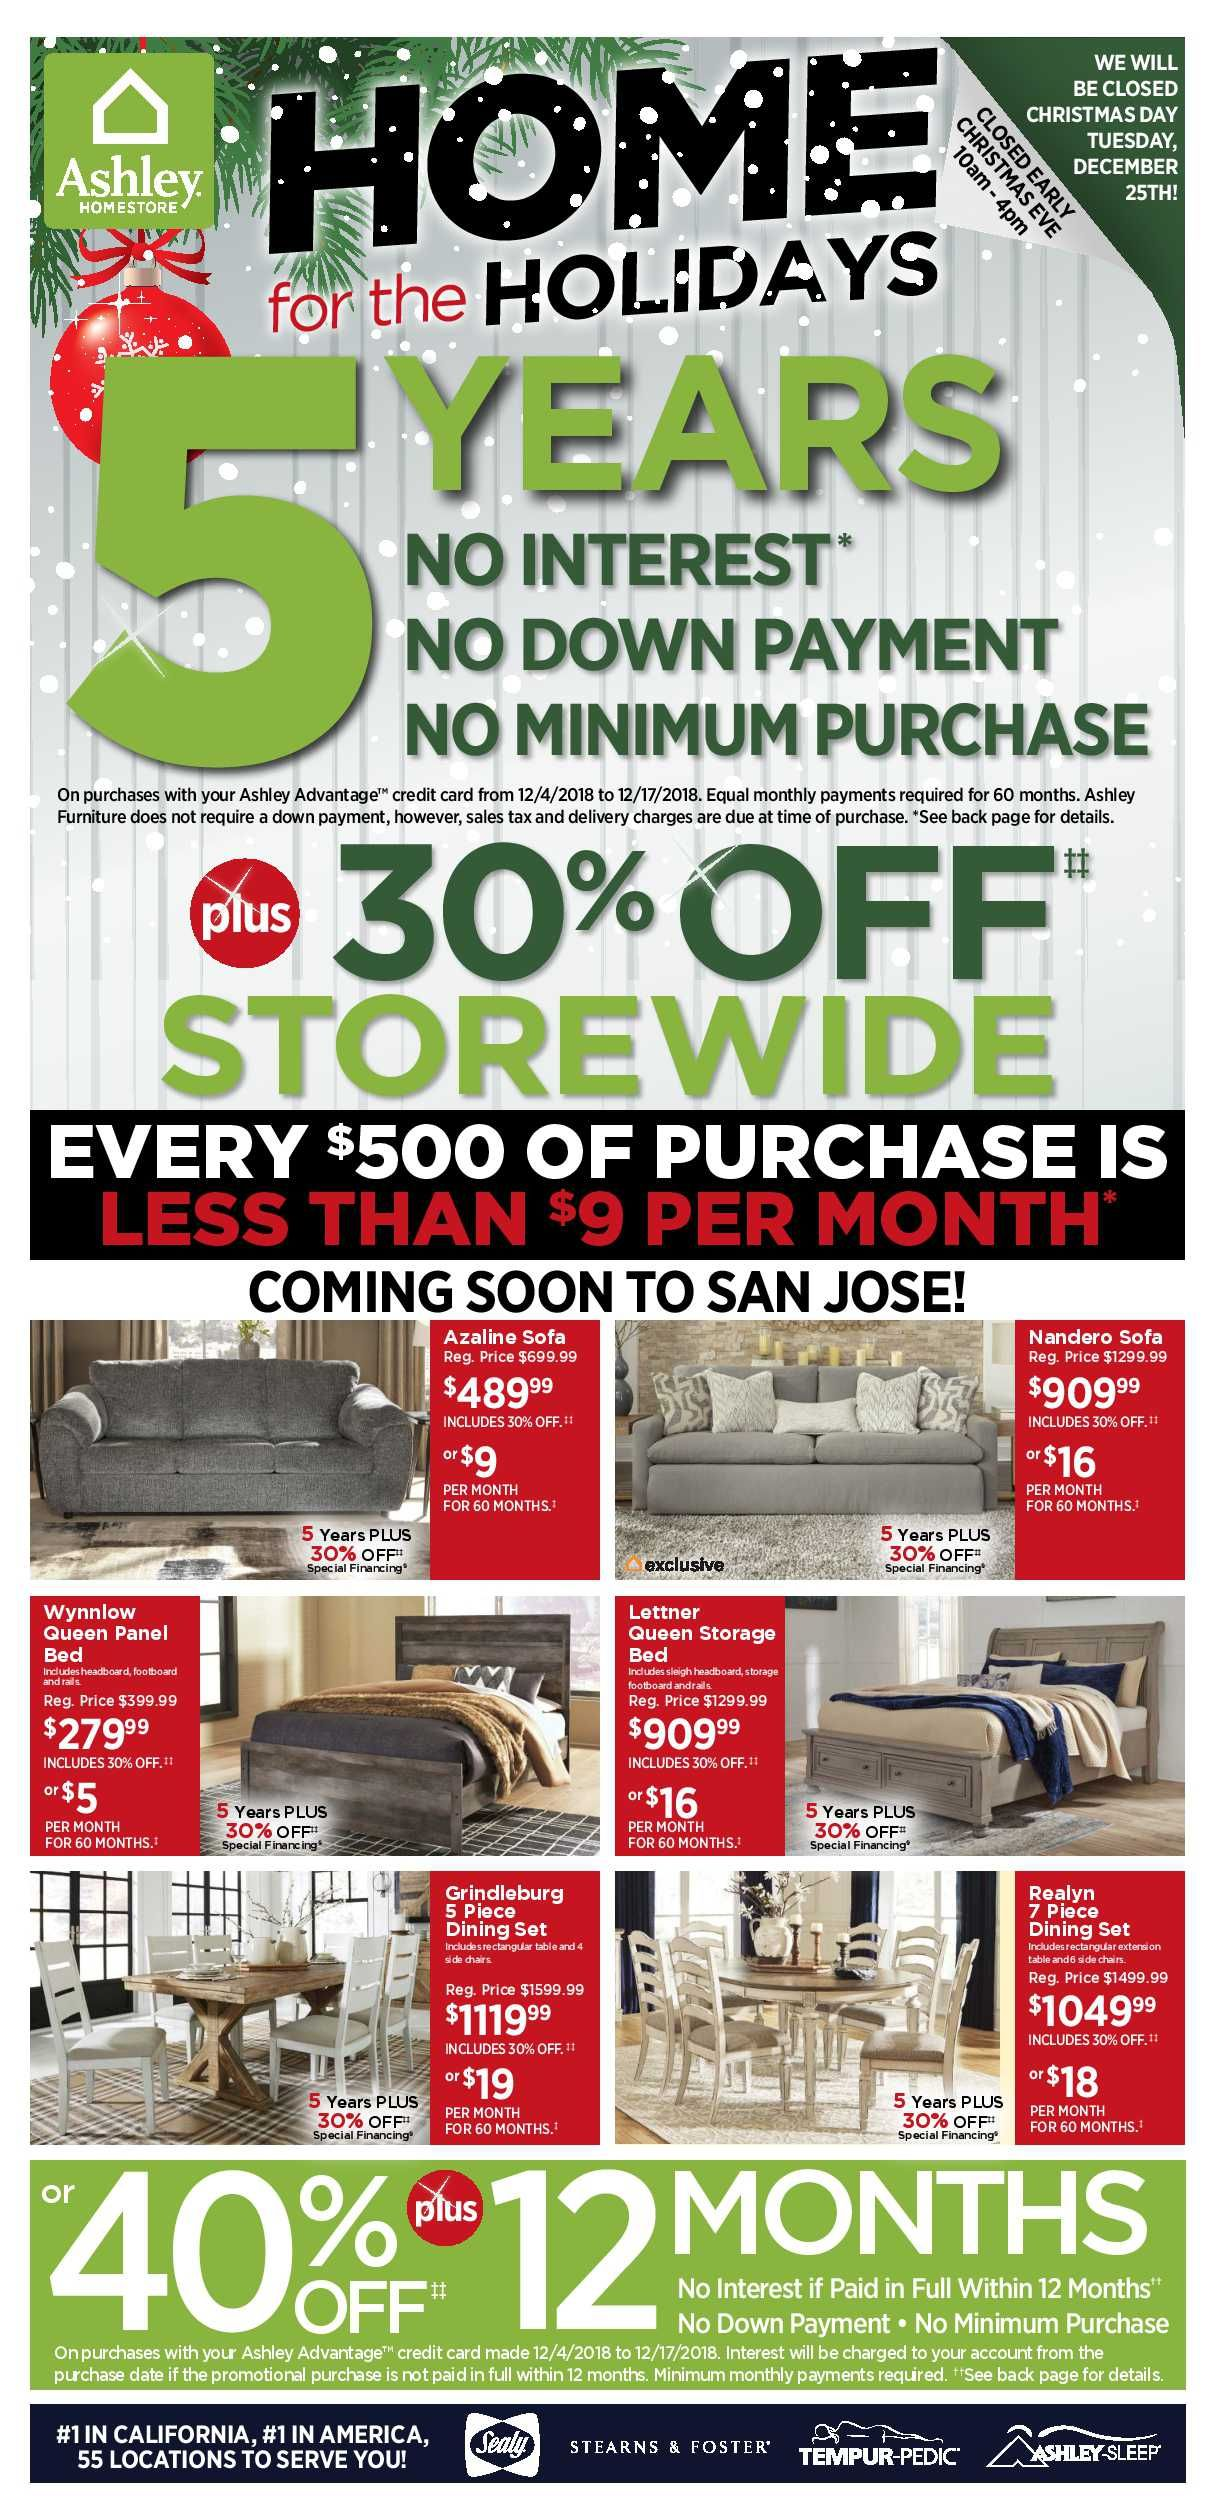 ashley furniture weekly deals flyer january 15 - 21, 2019